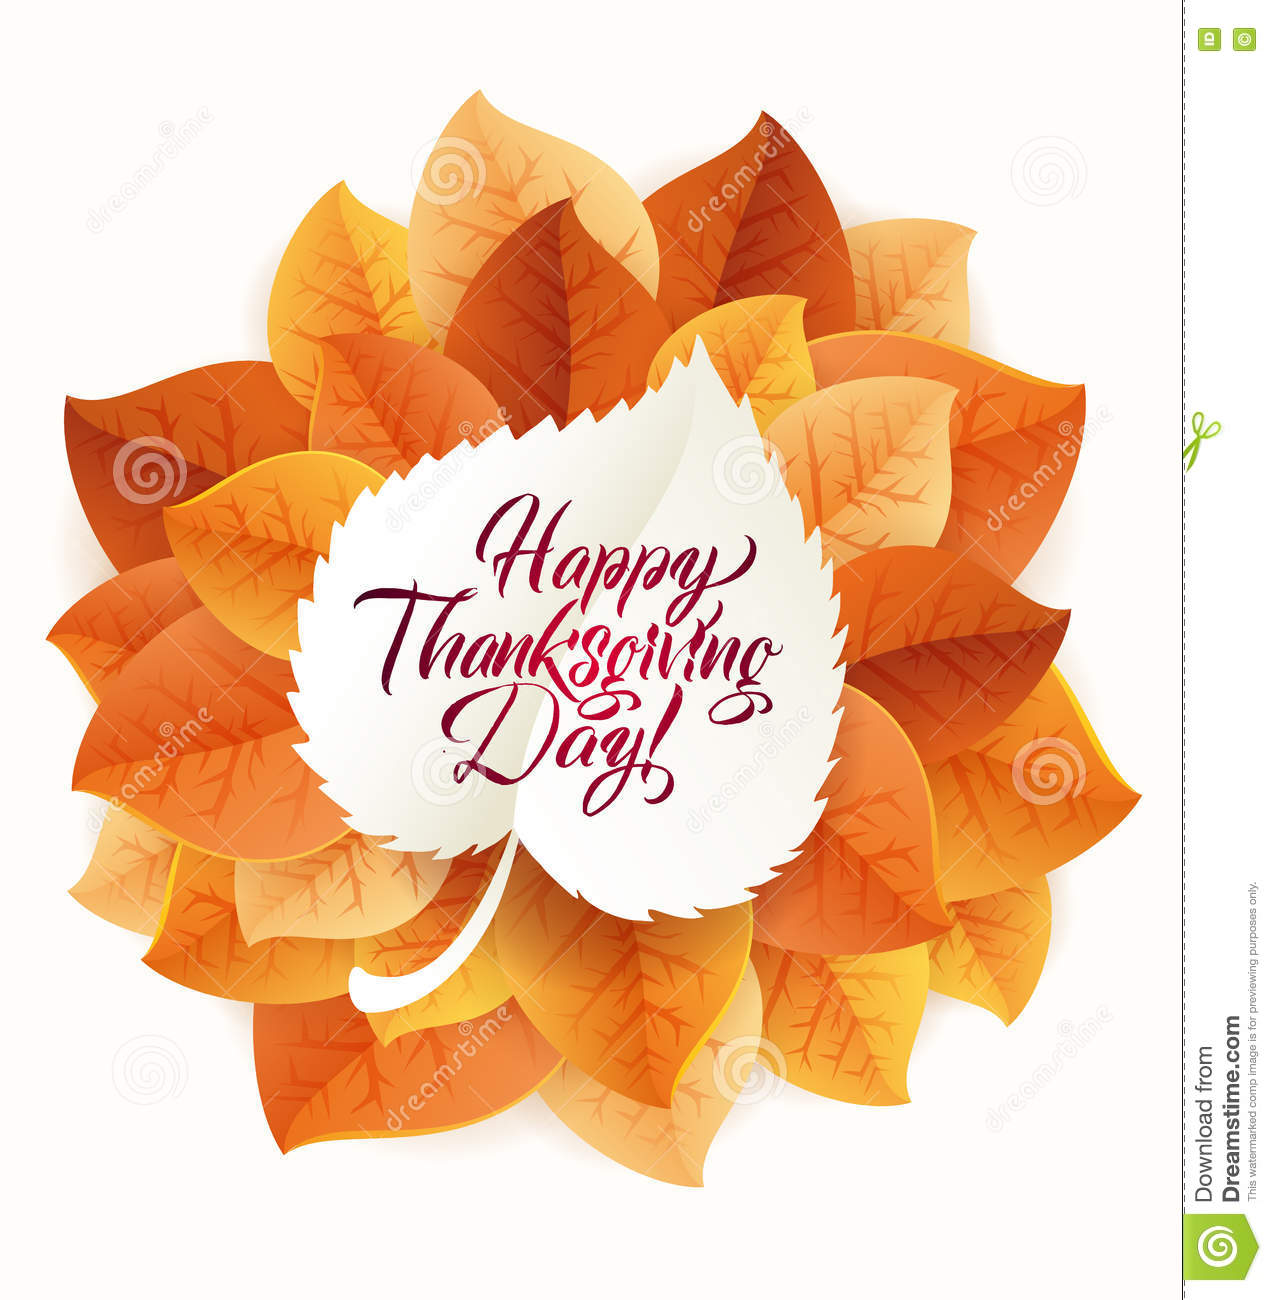 Happy thanksgiving day circular ornament made of leaves on white happy thanksgiving day circular ornament made of leaves on white background happy thanksgiving day greeting m4hsunfo